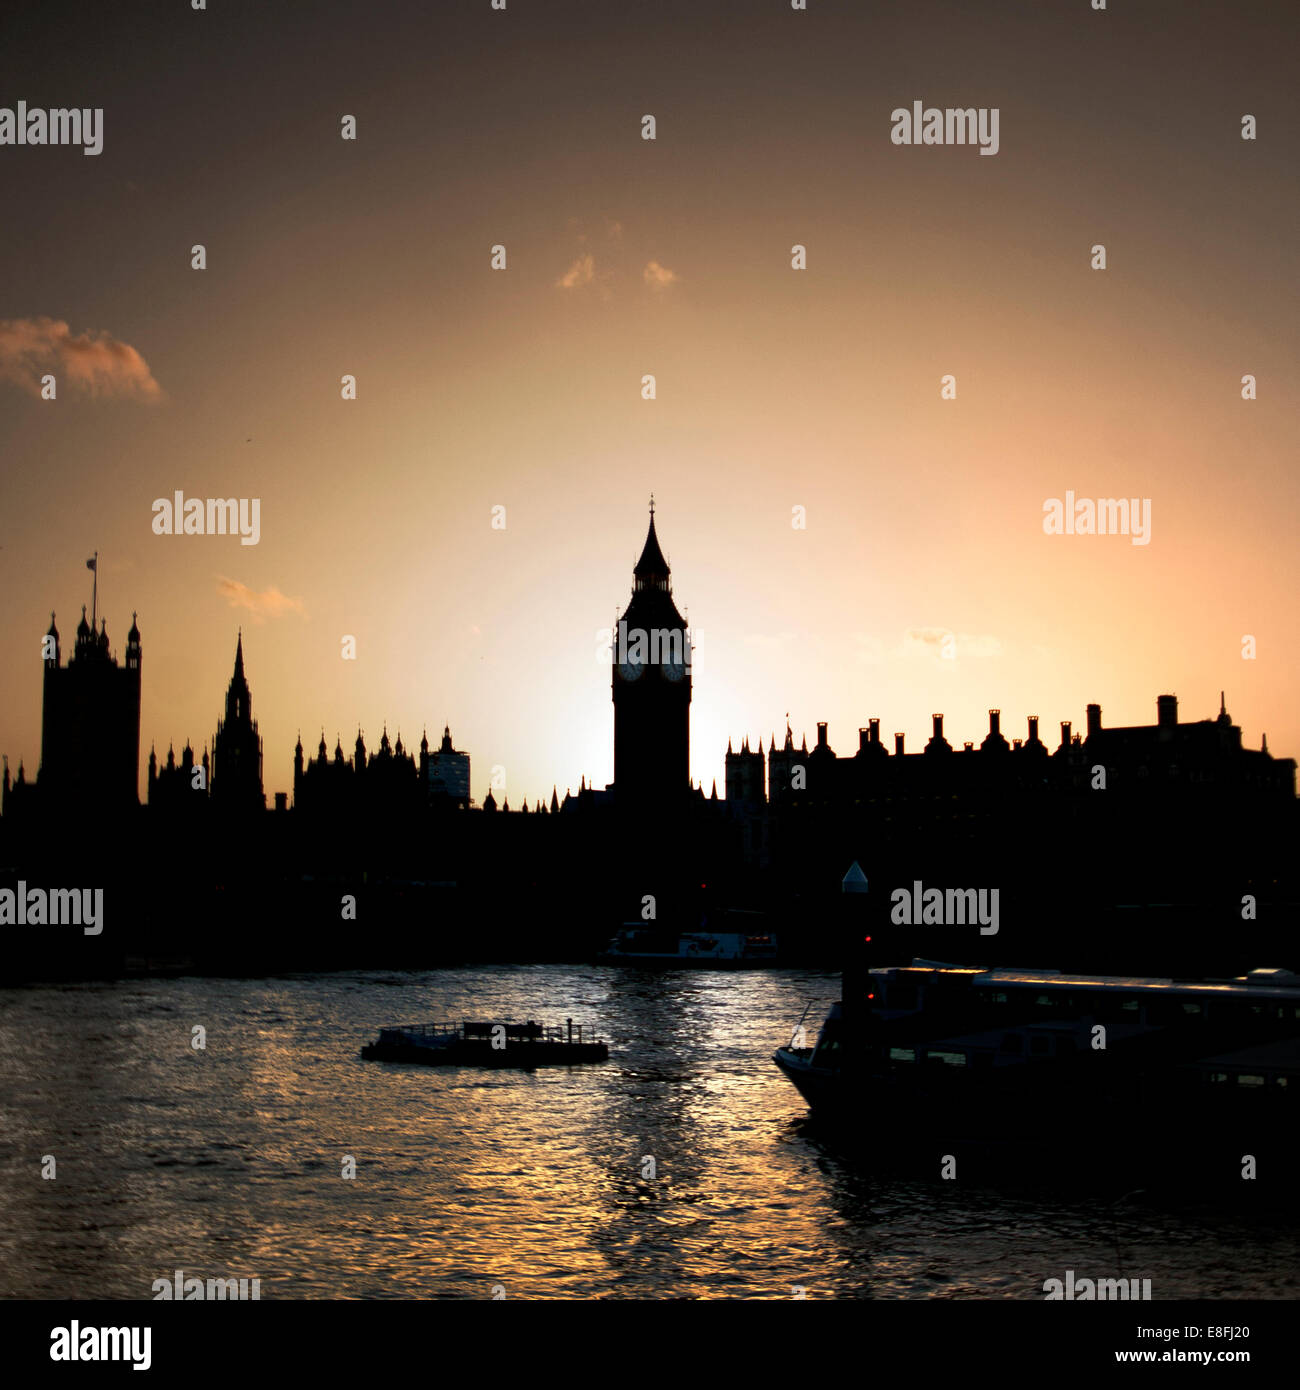 Houses of Parliament and Big Ben at sunset, London, England, UK - Stock Image